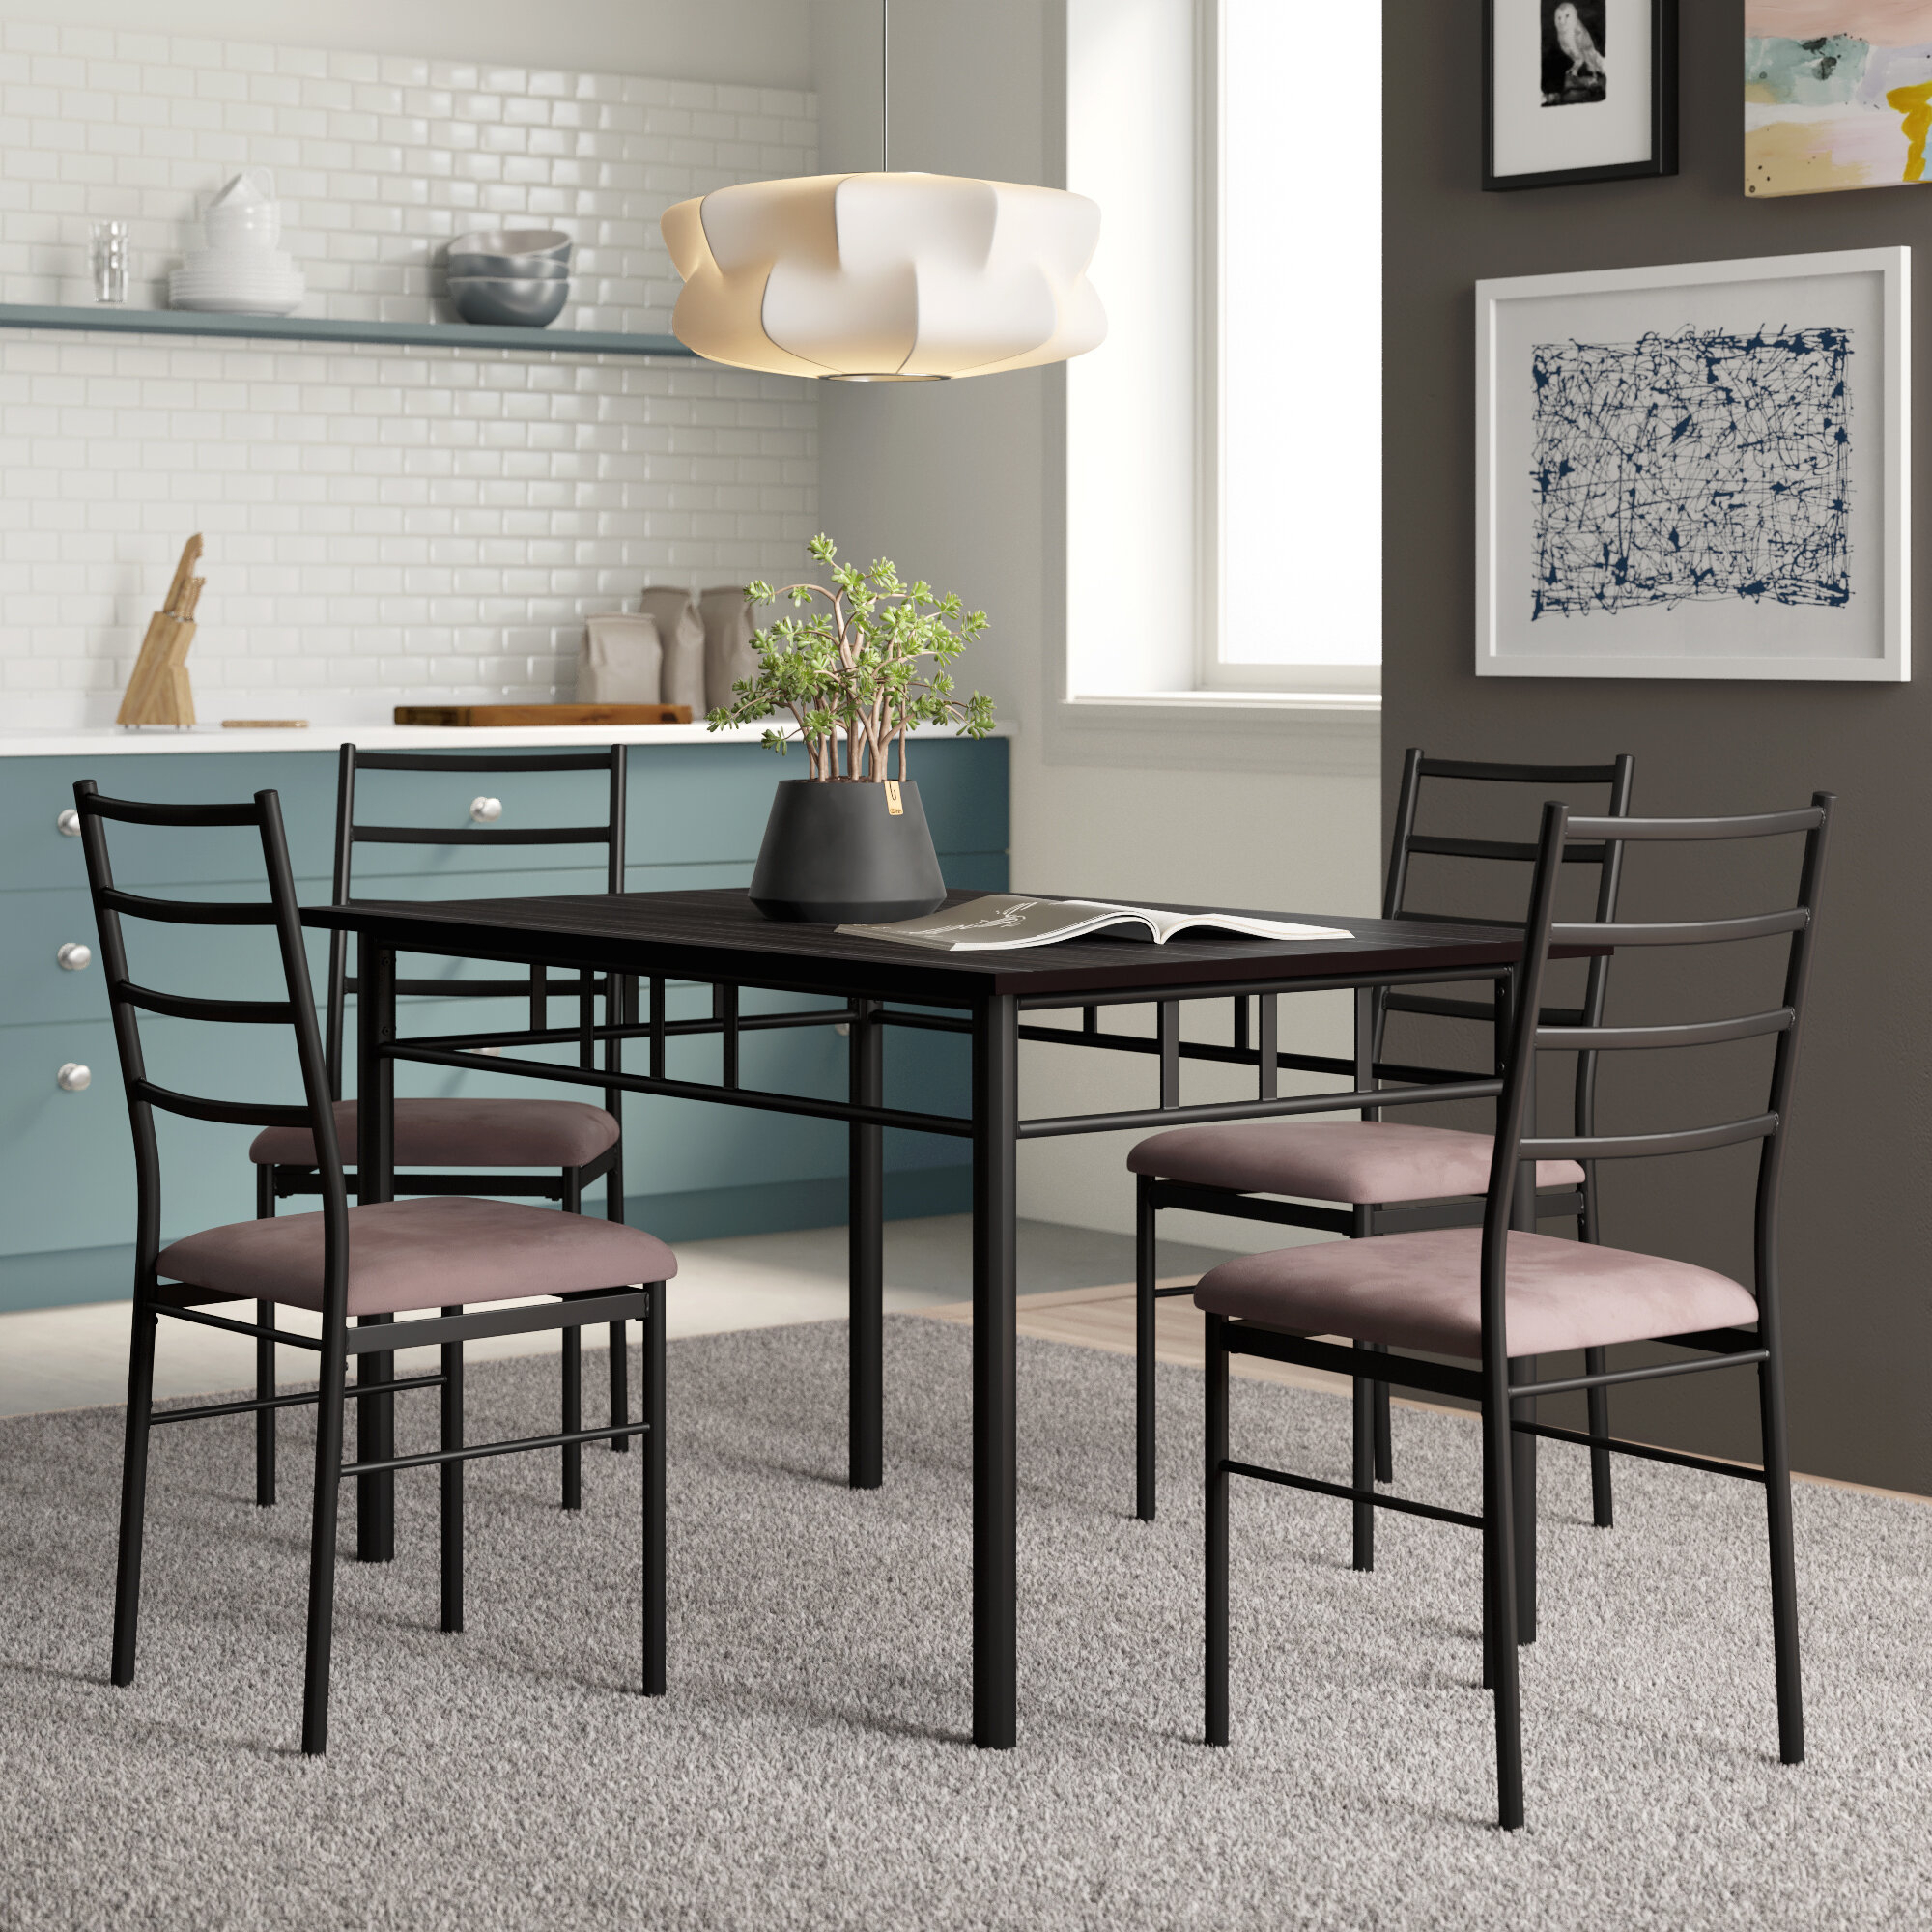 Jarrod 5 Piece Dining Set Intended For Recent Pattonsburg 5 Piece Dining Sets (View 17 of 20)